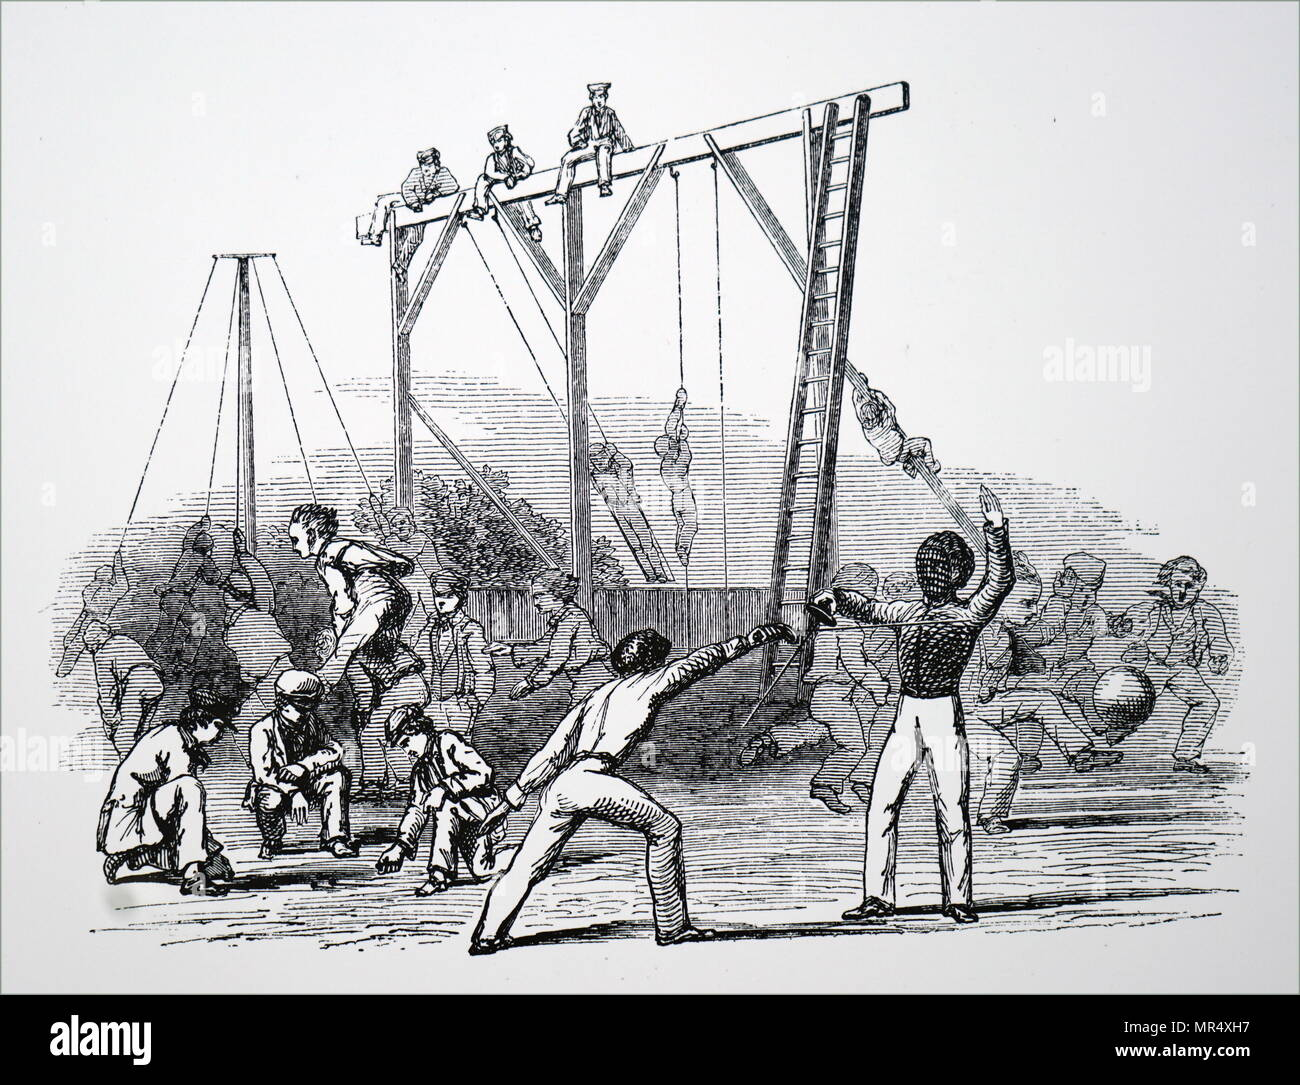 Illustration depicting boys doing gymnastics. Dated 19th century - Stock Image